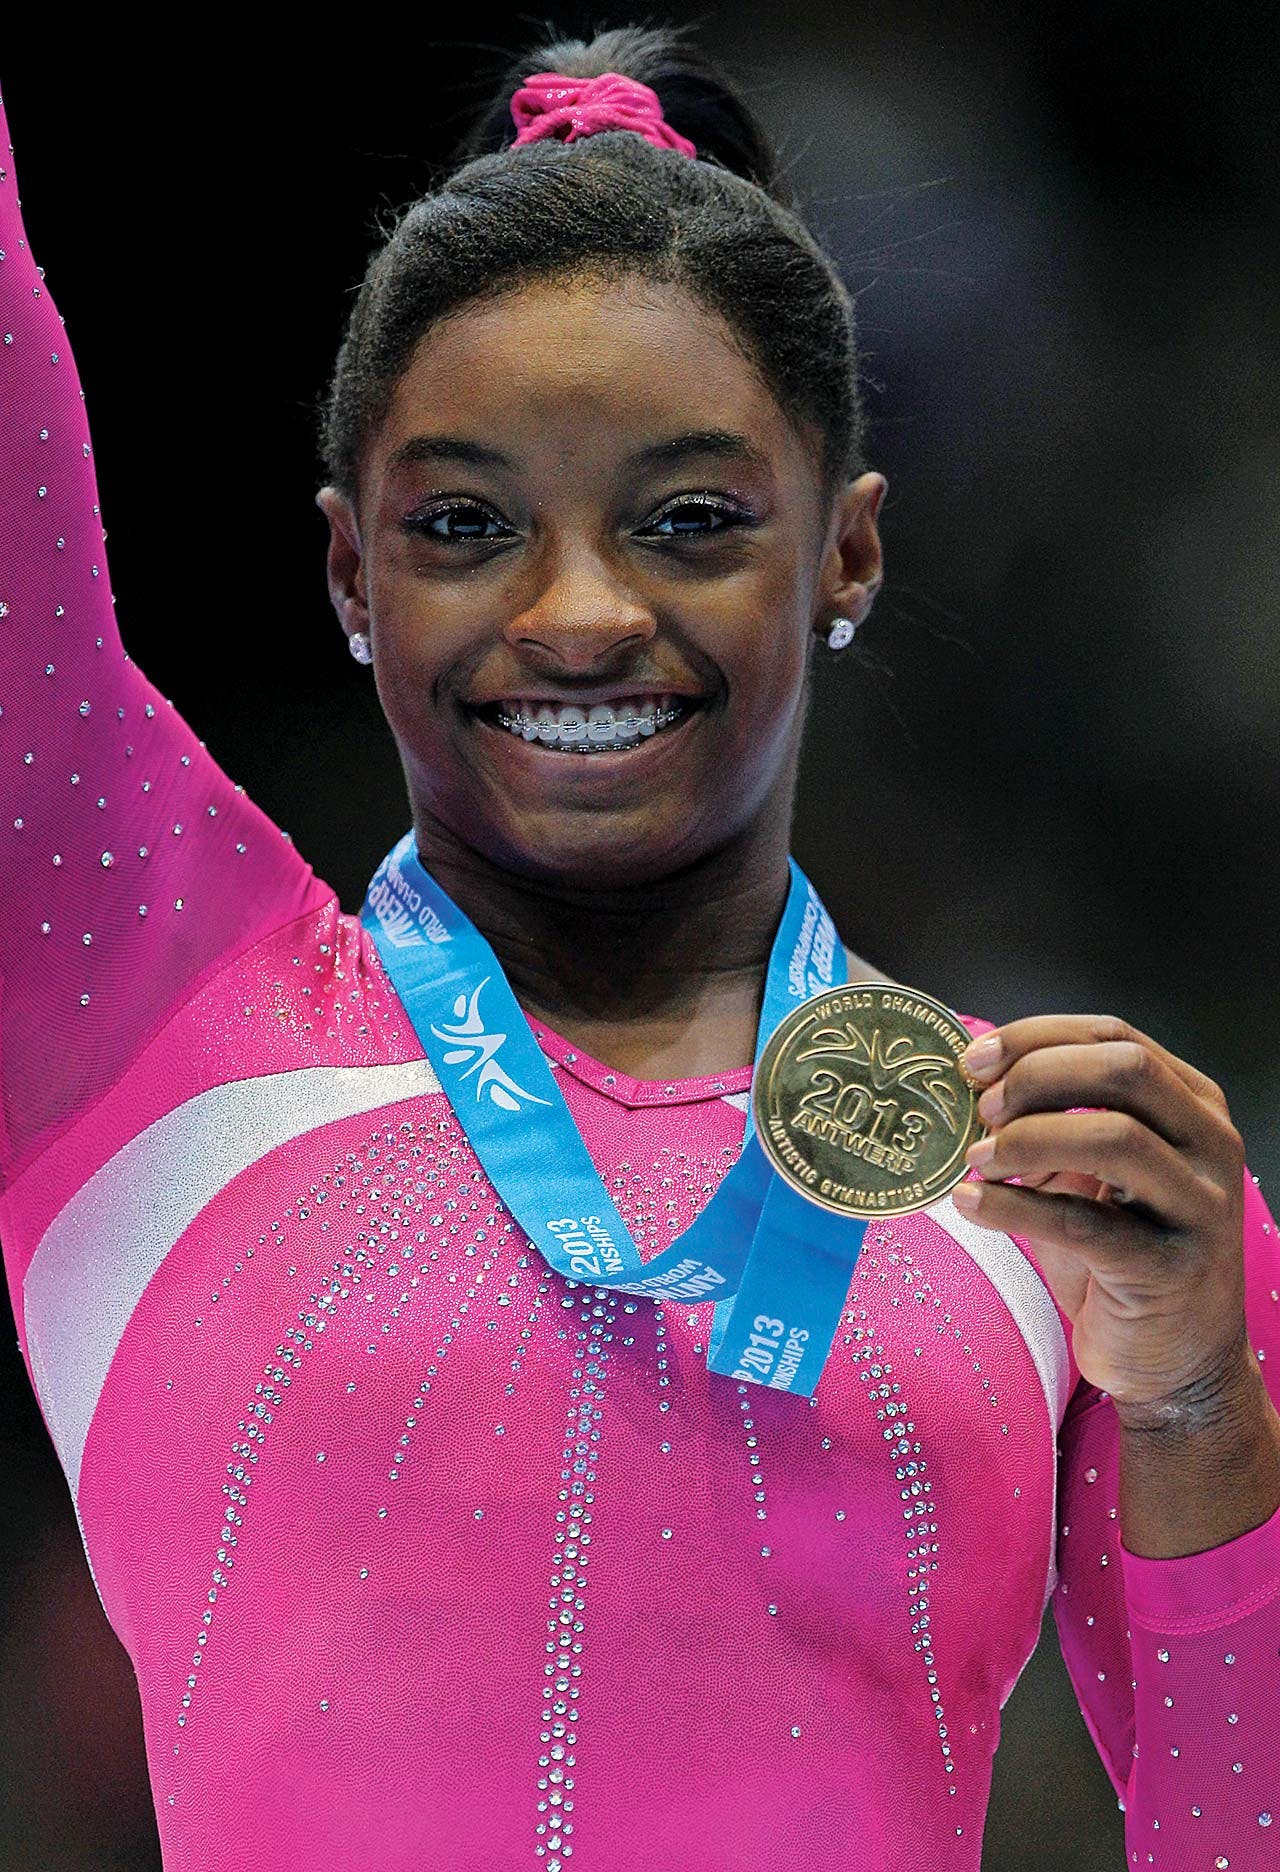 Biles shows her gold medal during the podium ceremony at the 2013 Worlds, in Antwerp.